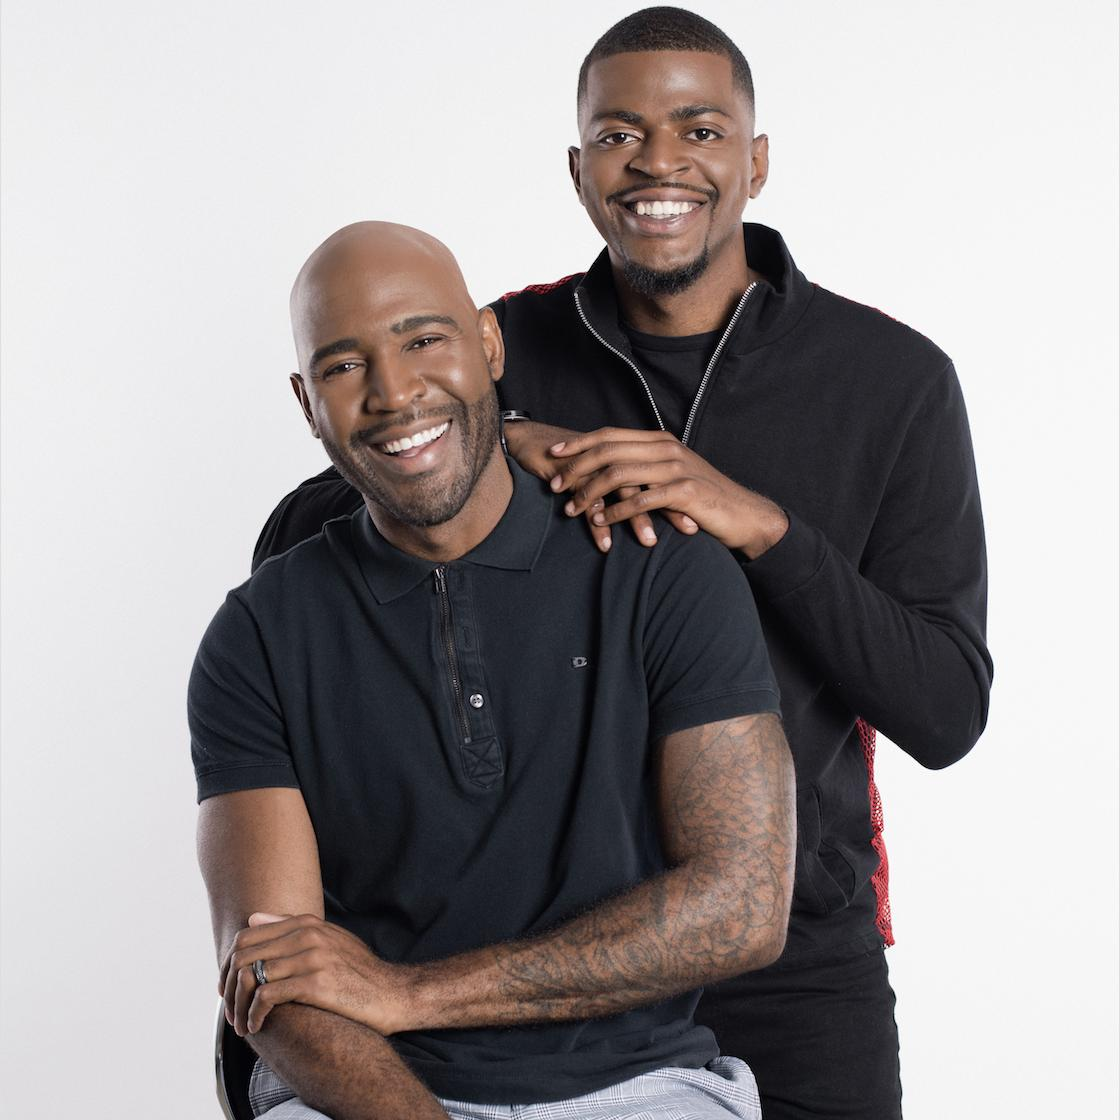 .@Karamo and his son Jason Brown discuss identity, gender, and what it means to be a family in Part 1 of this powerful conversation. Listen now on #Luminary: http://bit.ly/2QjcUJq: Raen Badua